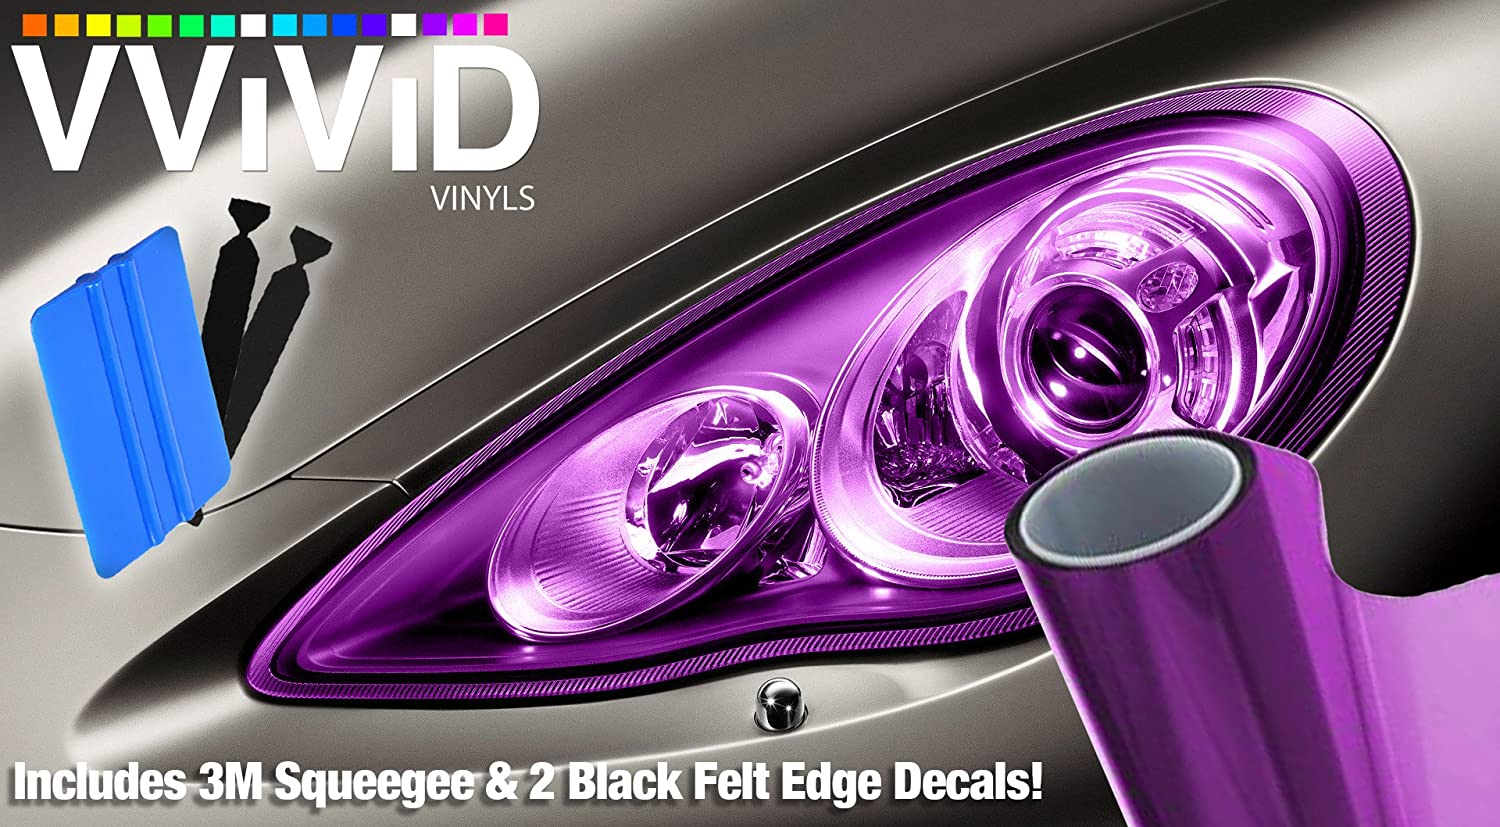 Vvivid extra wide headlight taillight vinyl tint wrap 16 x 48 roll including 3m blue squeegee 2x black felt edge decals purple